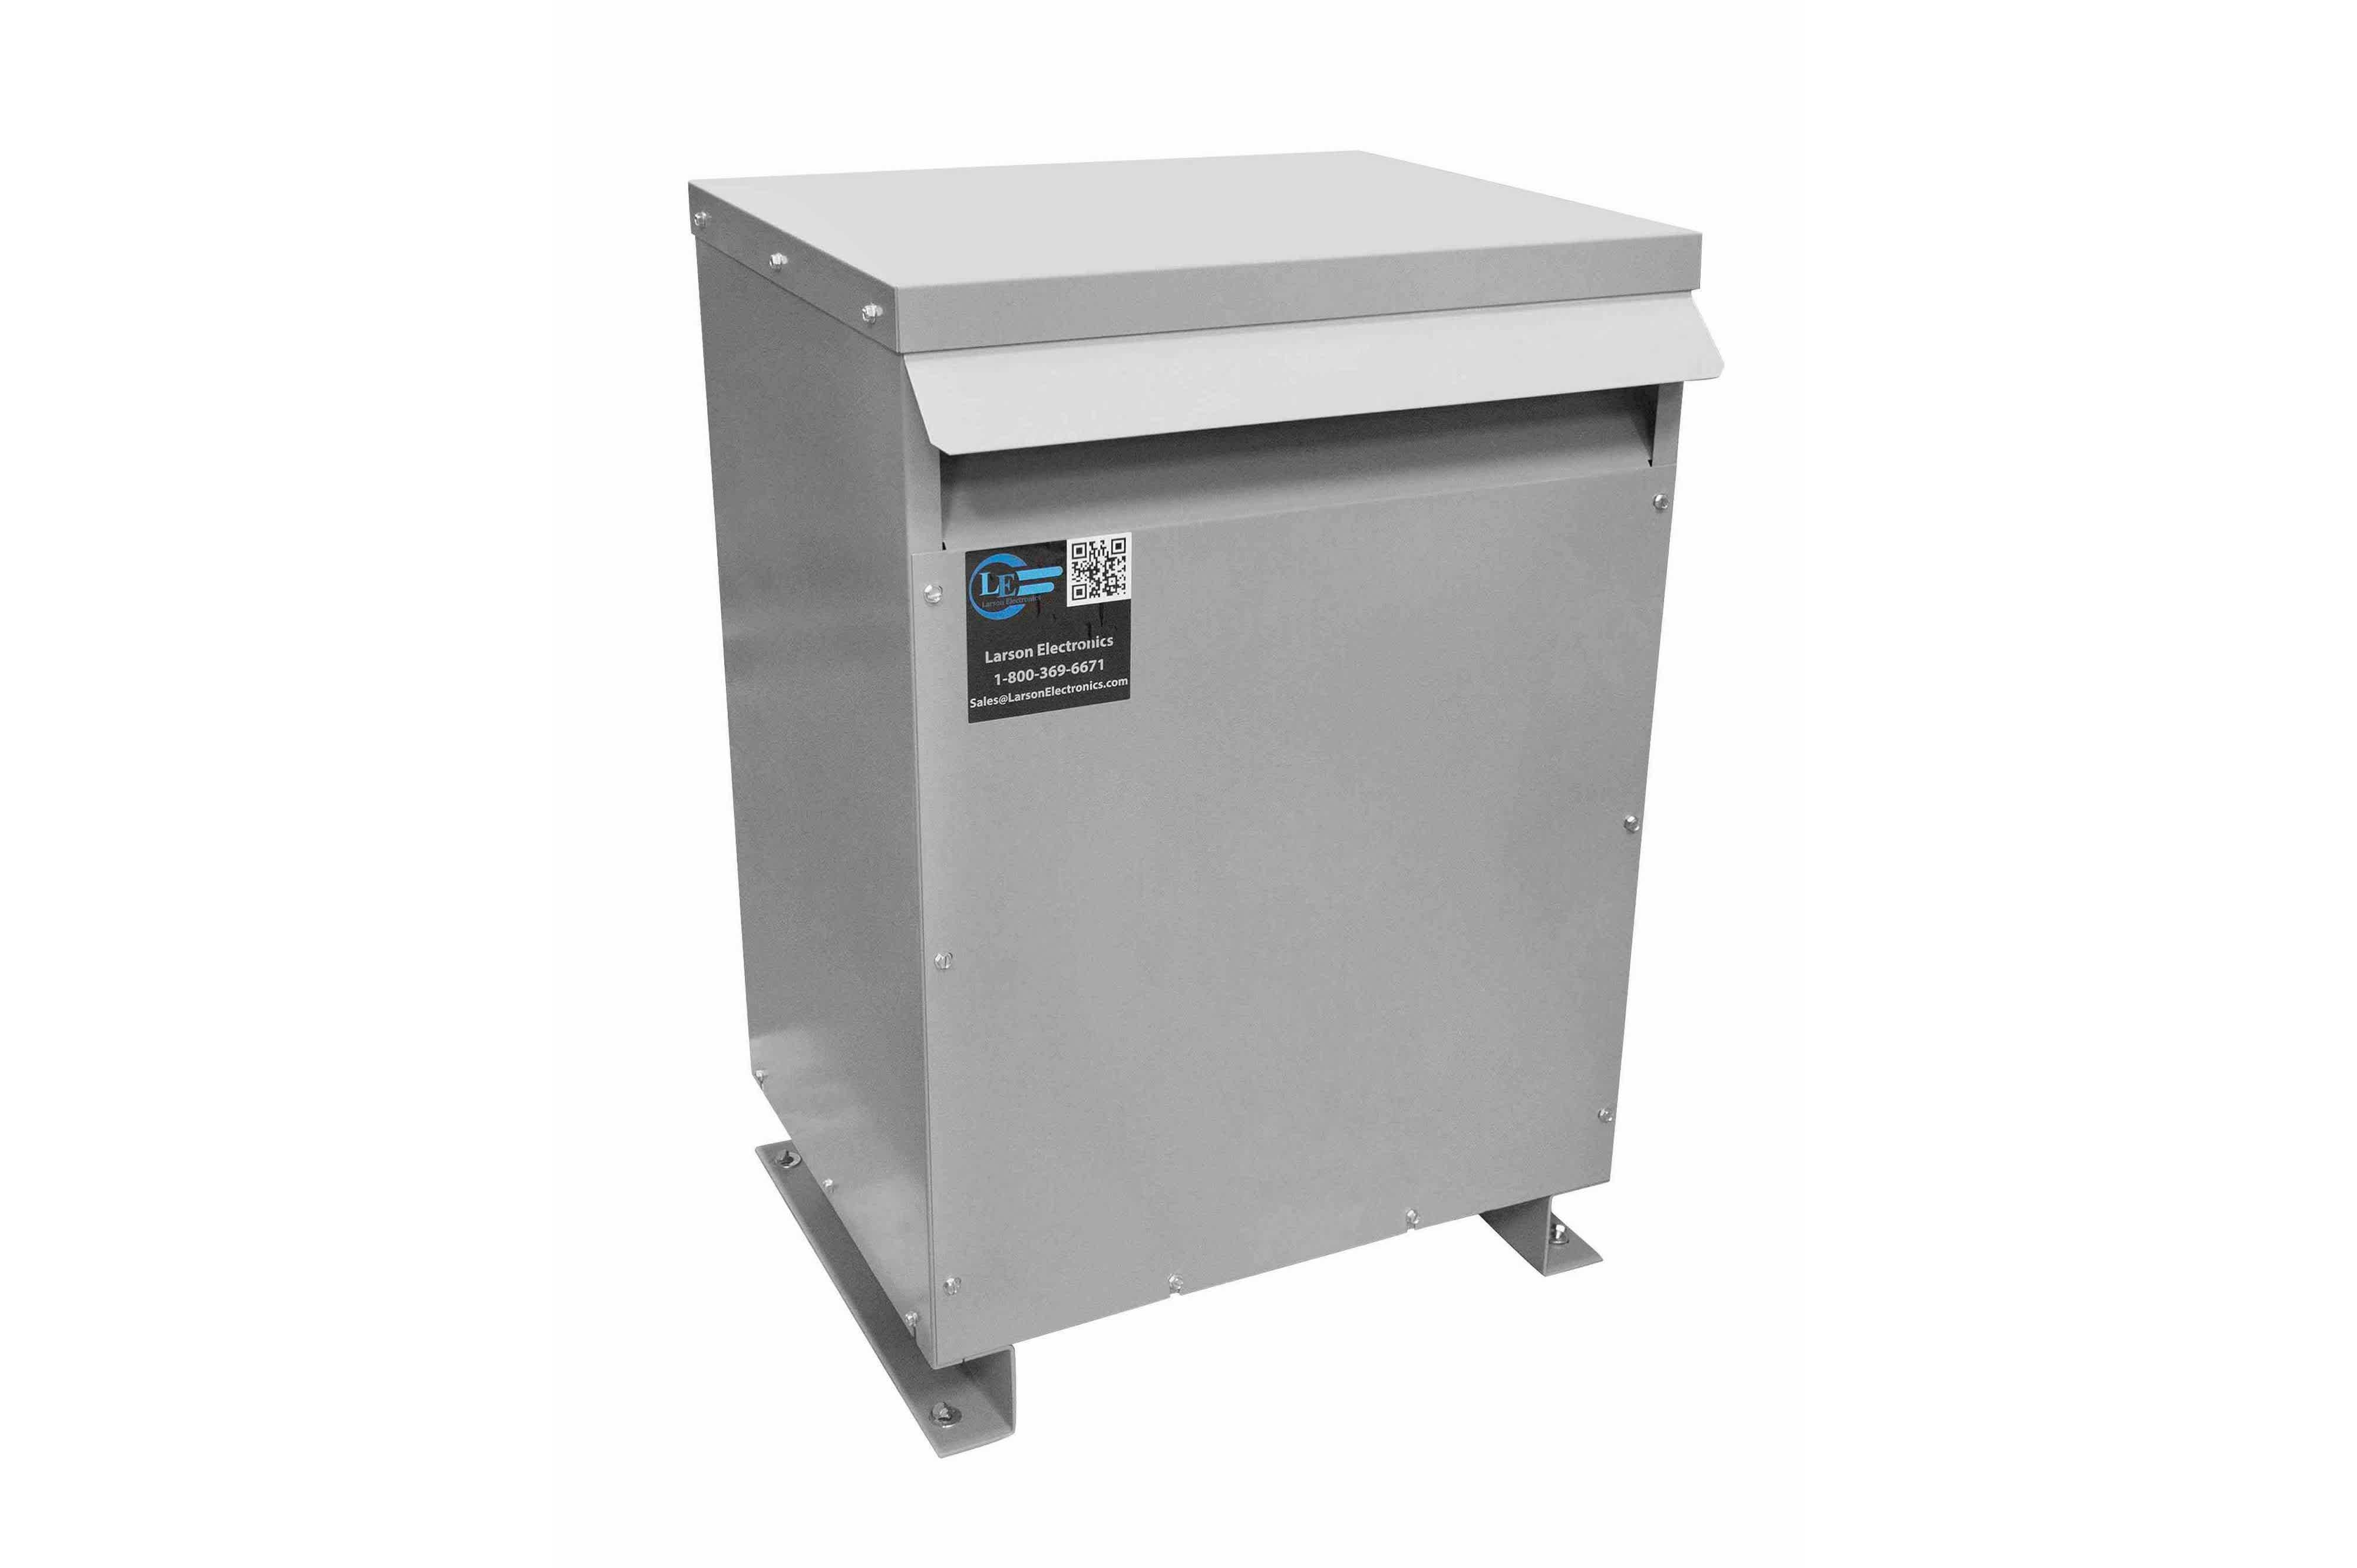 22.5 kVA 3PH Isolation Transformer, 600V Wye Primary, 380V Delta Secondary, N3R, Ventilated, 60 Hz